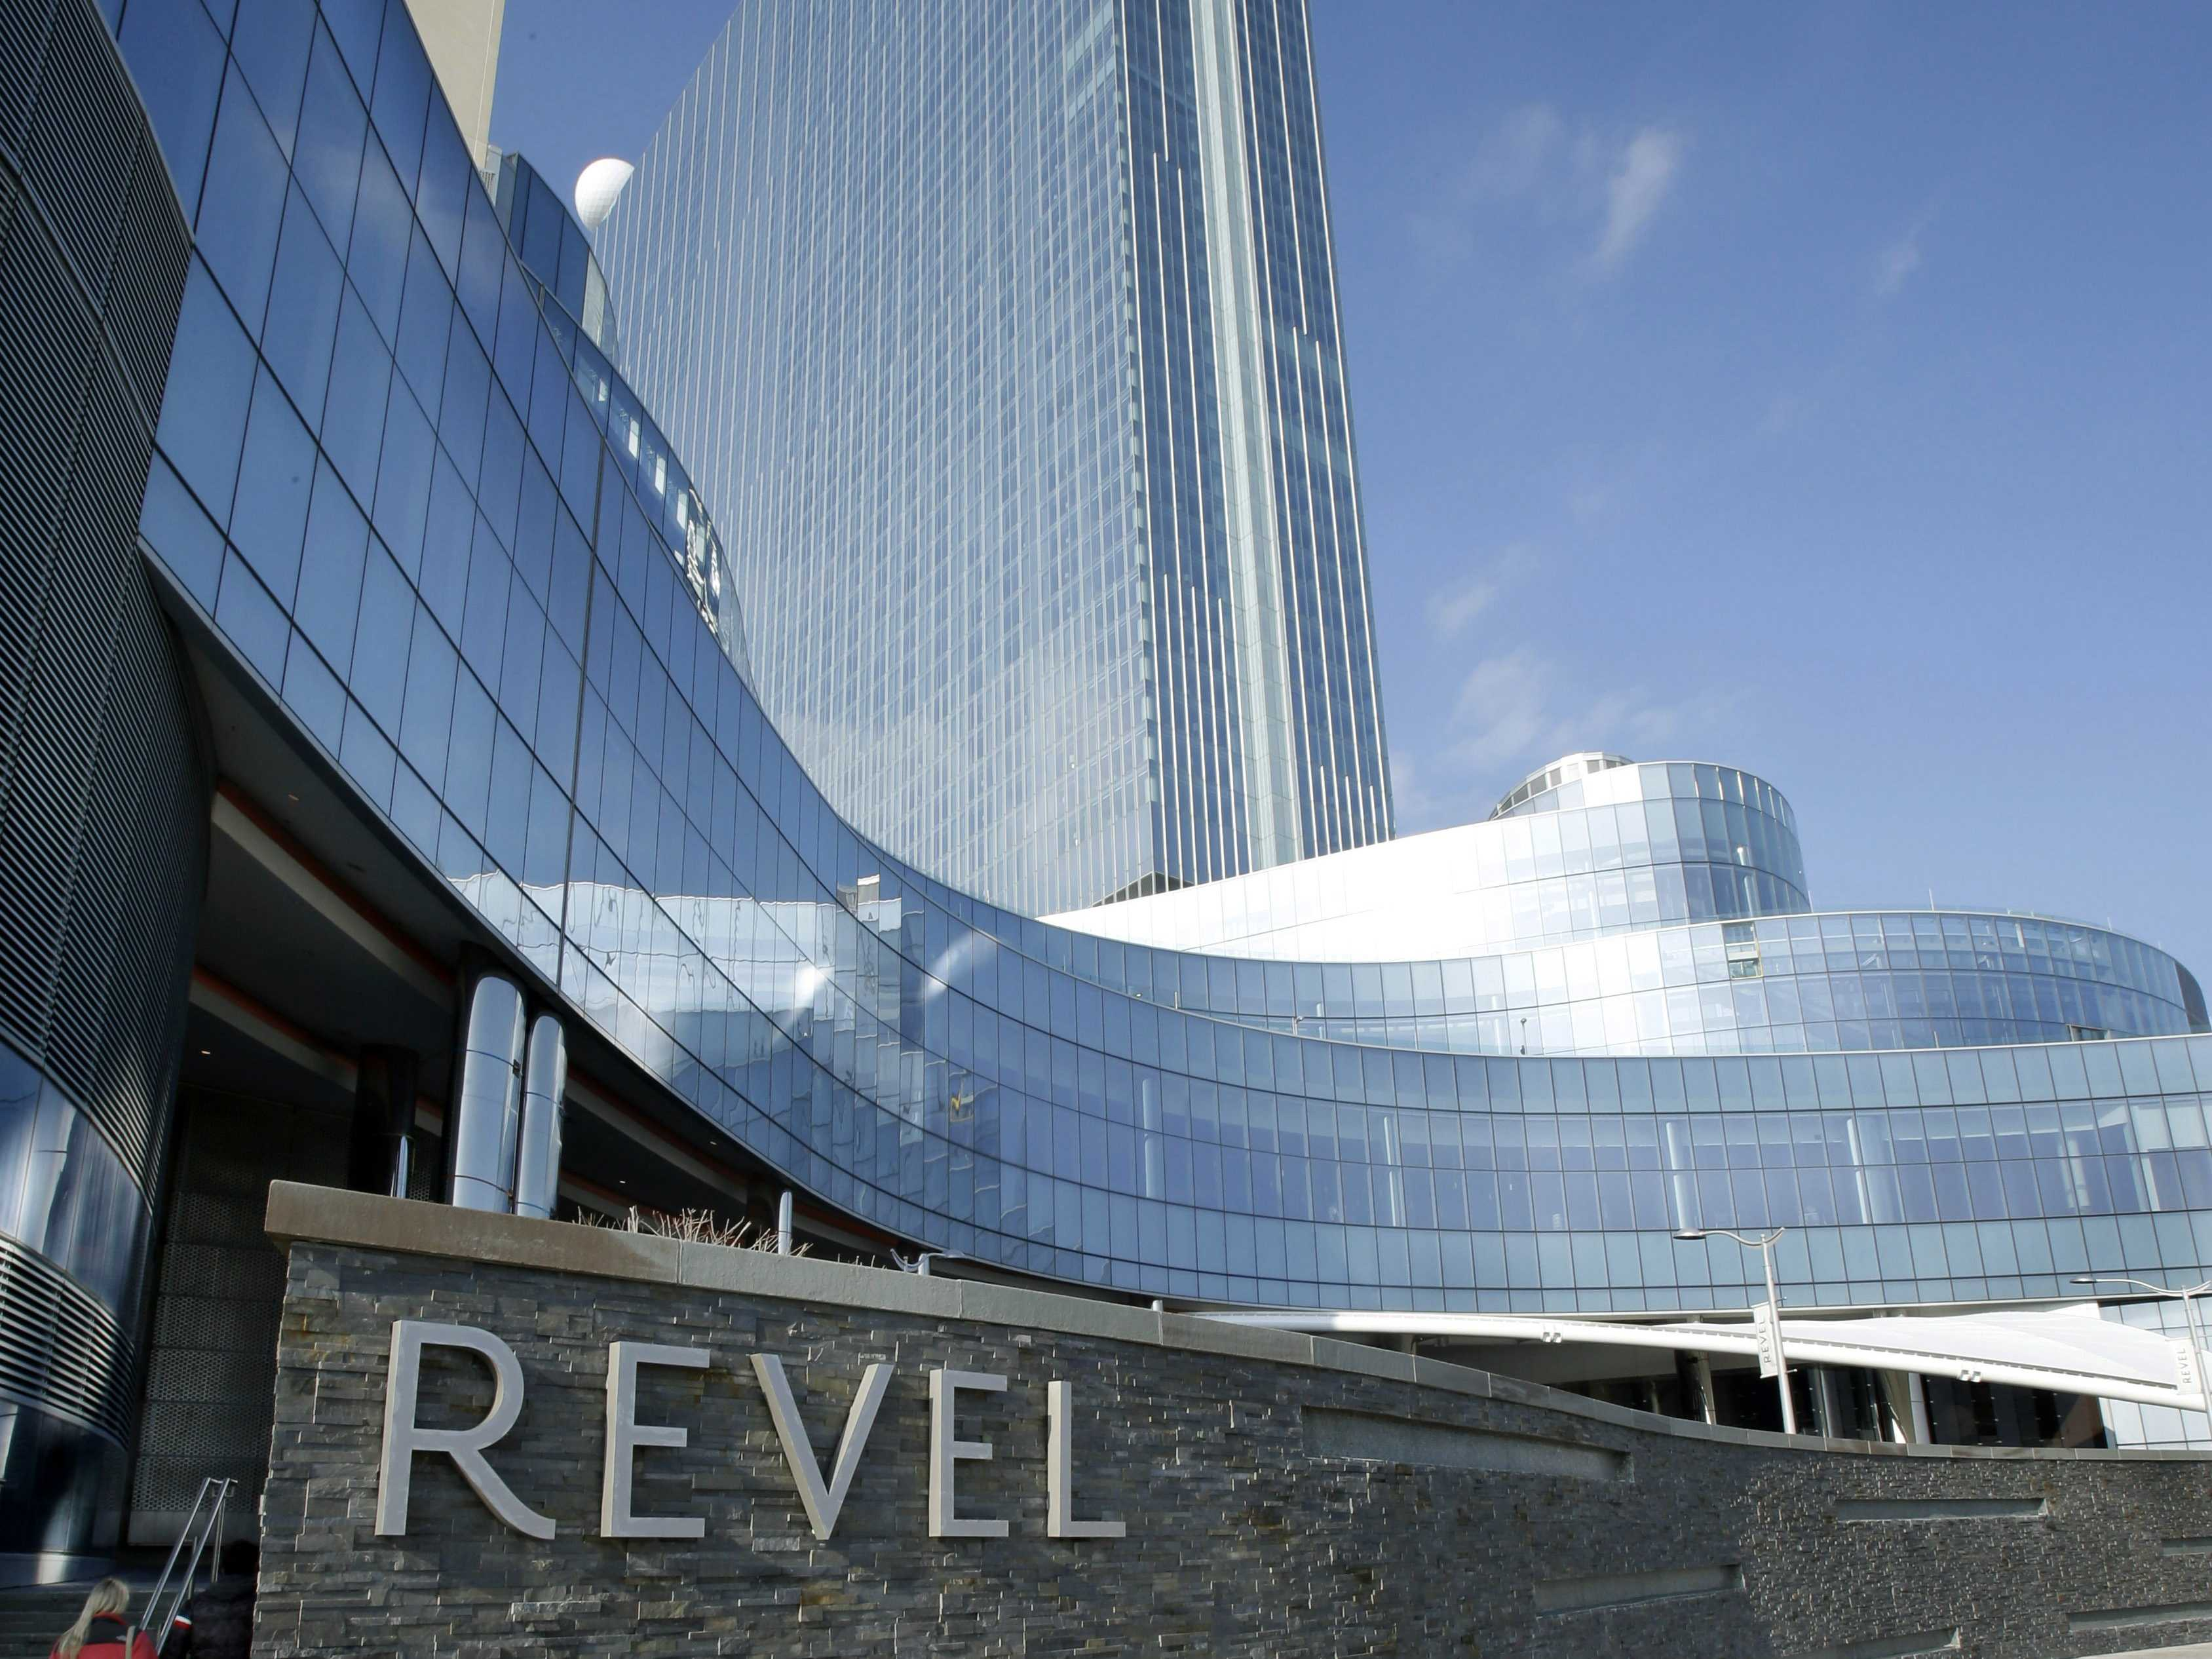 Signage on the Norstone stacked stone wall at the Revel Casino in Atlantic City as seen from the boardwalk